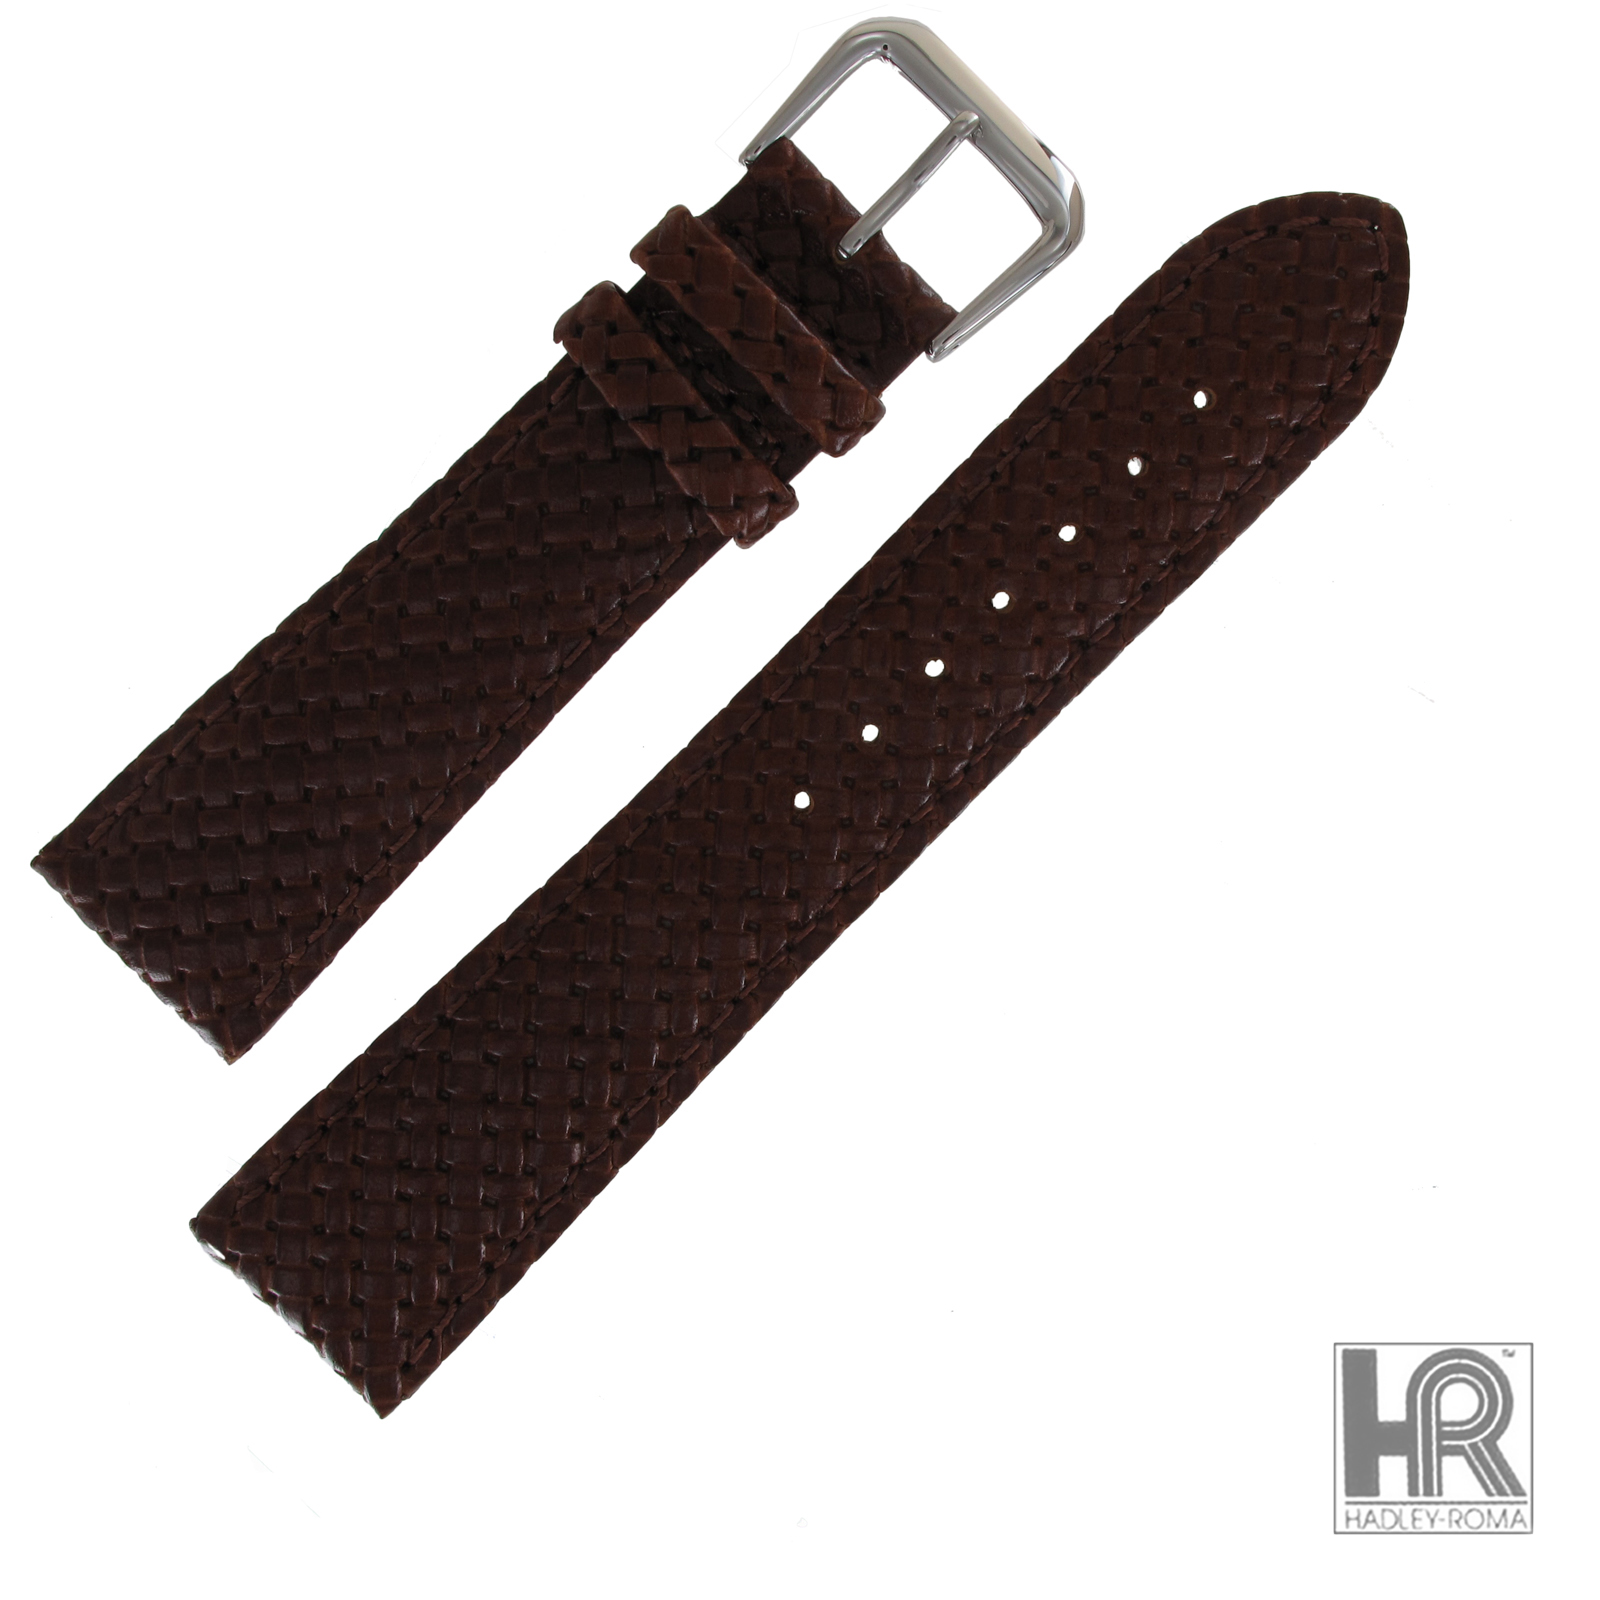 Hadley Roma MS843 18mm Tan Woven Braided Stitched Genuine Leather Watch Band